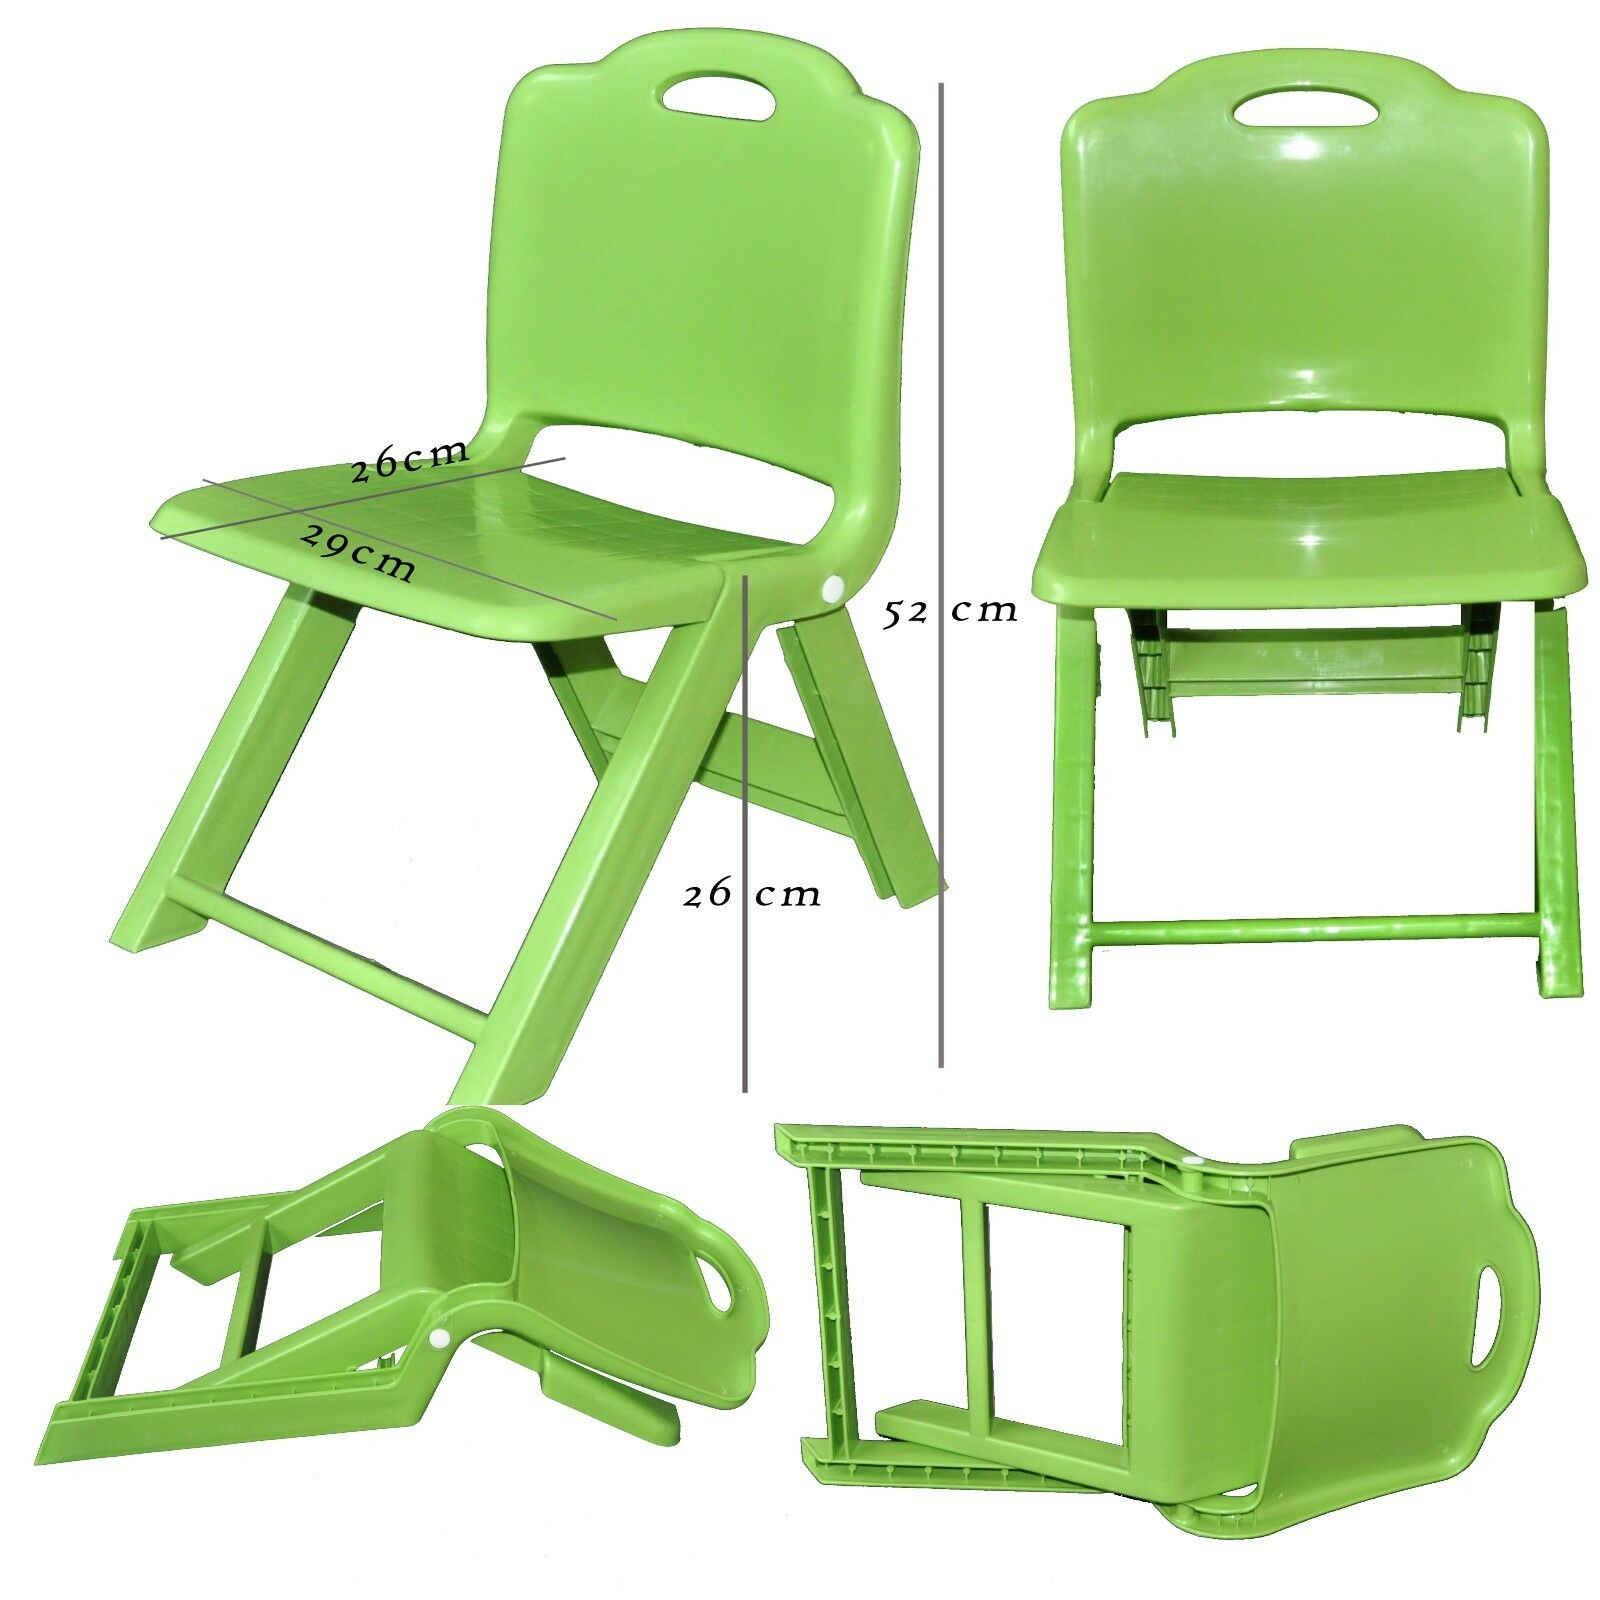 toddler plastic chairs grandin road rocking chair strong kids children folding home picnic